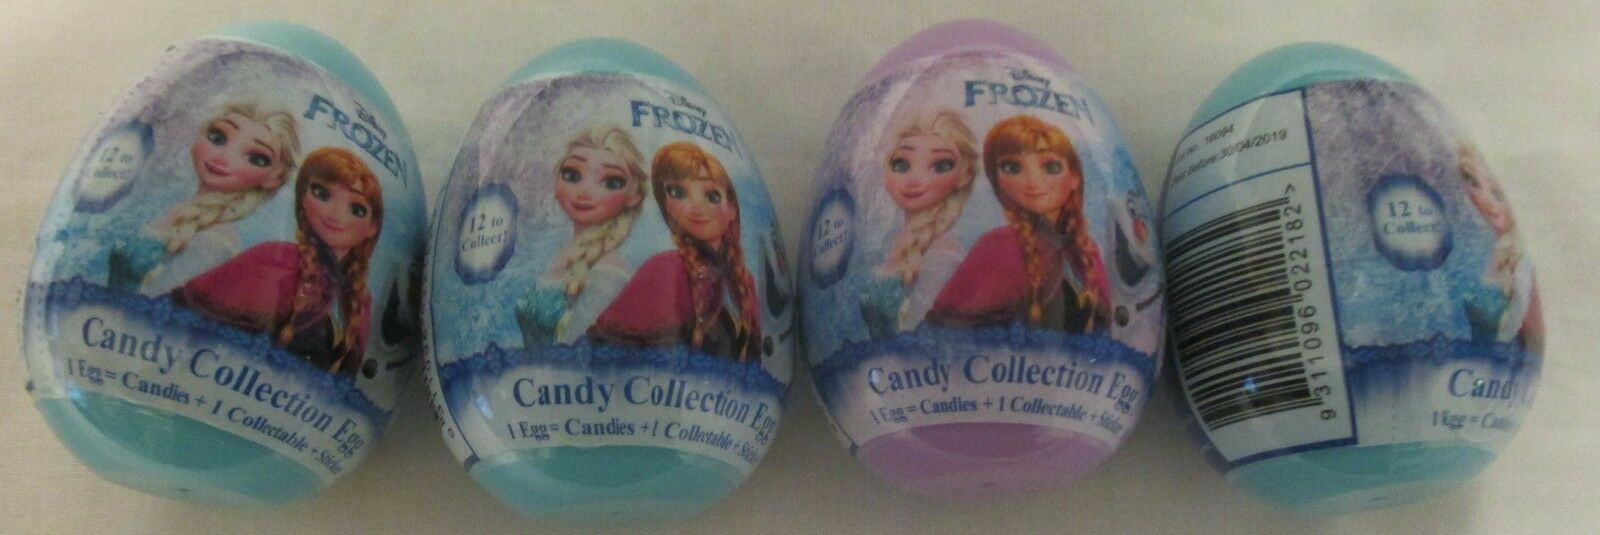 904713 x4 10g DISNEY FROZEN CANDY COLLECTION EGGS WITH STICKERS - NOVELTY IDEA